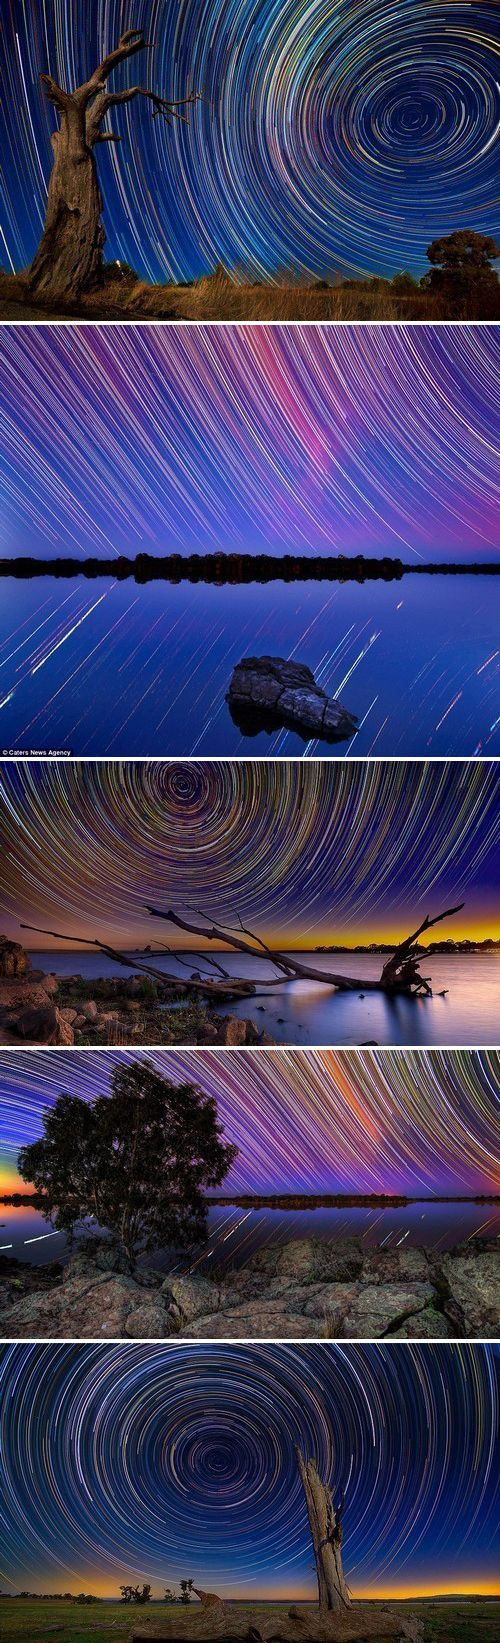 Extremely long exposure: Photographer Lincoln Harrison endures 15-hour shoots in the wintry Australian outback to snare stunning images of star trails in the night sky.